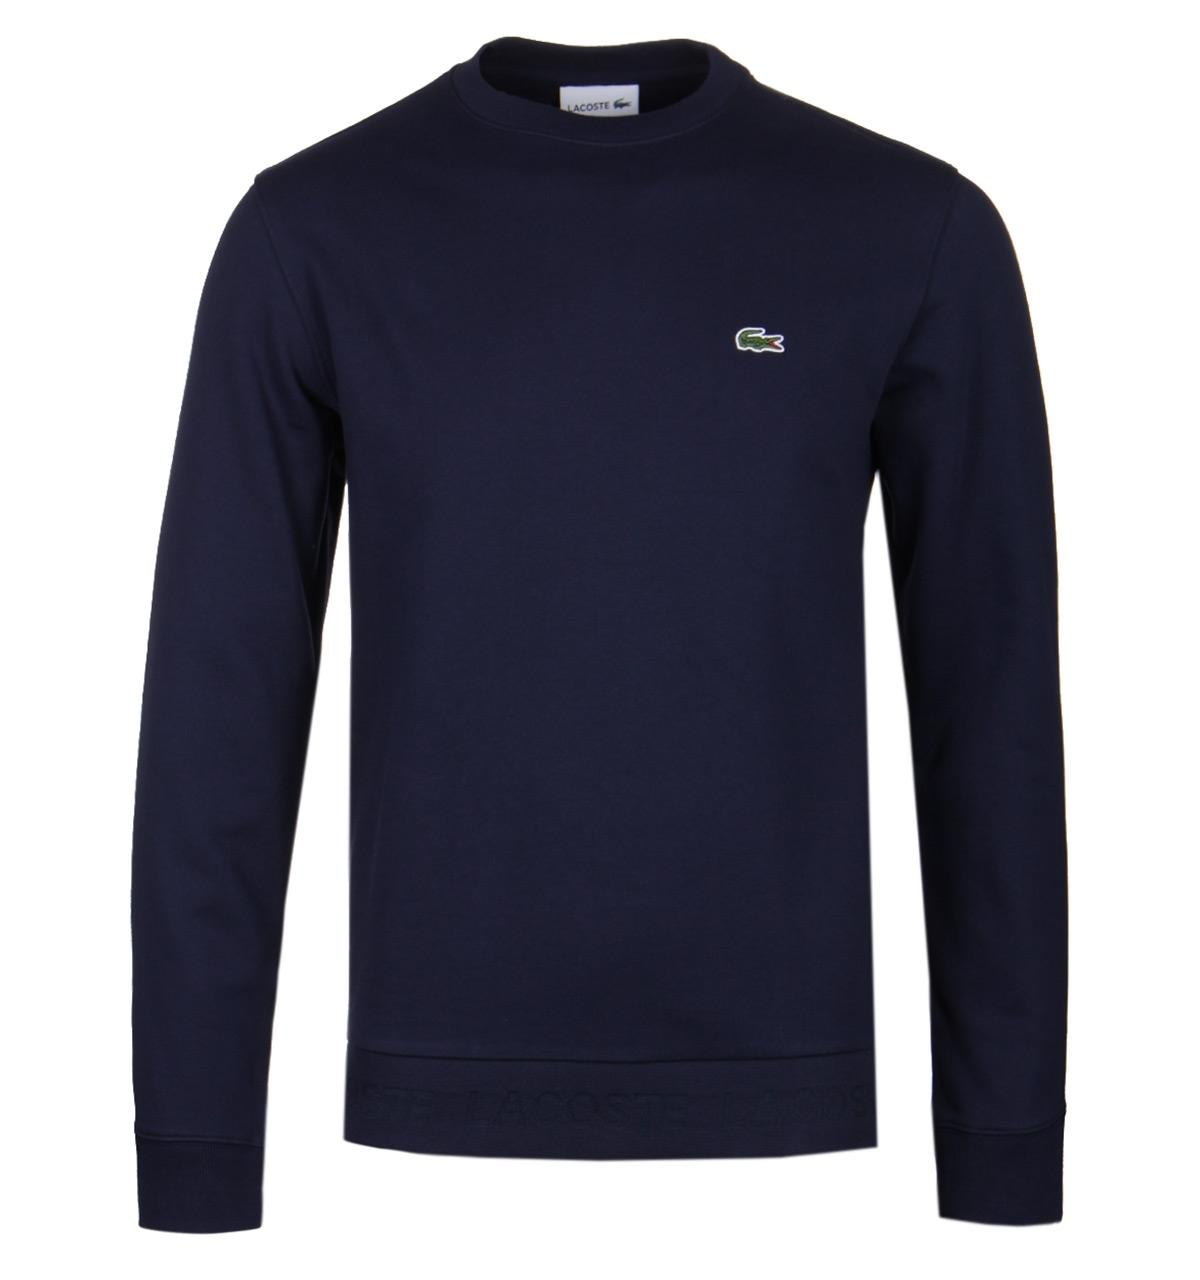 153646682 Lacoste Crew Neck Logo Hem Navy Sweatshirt in Blue for Men - Lyst